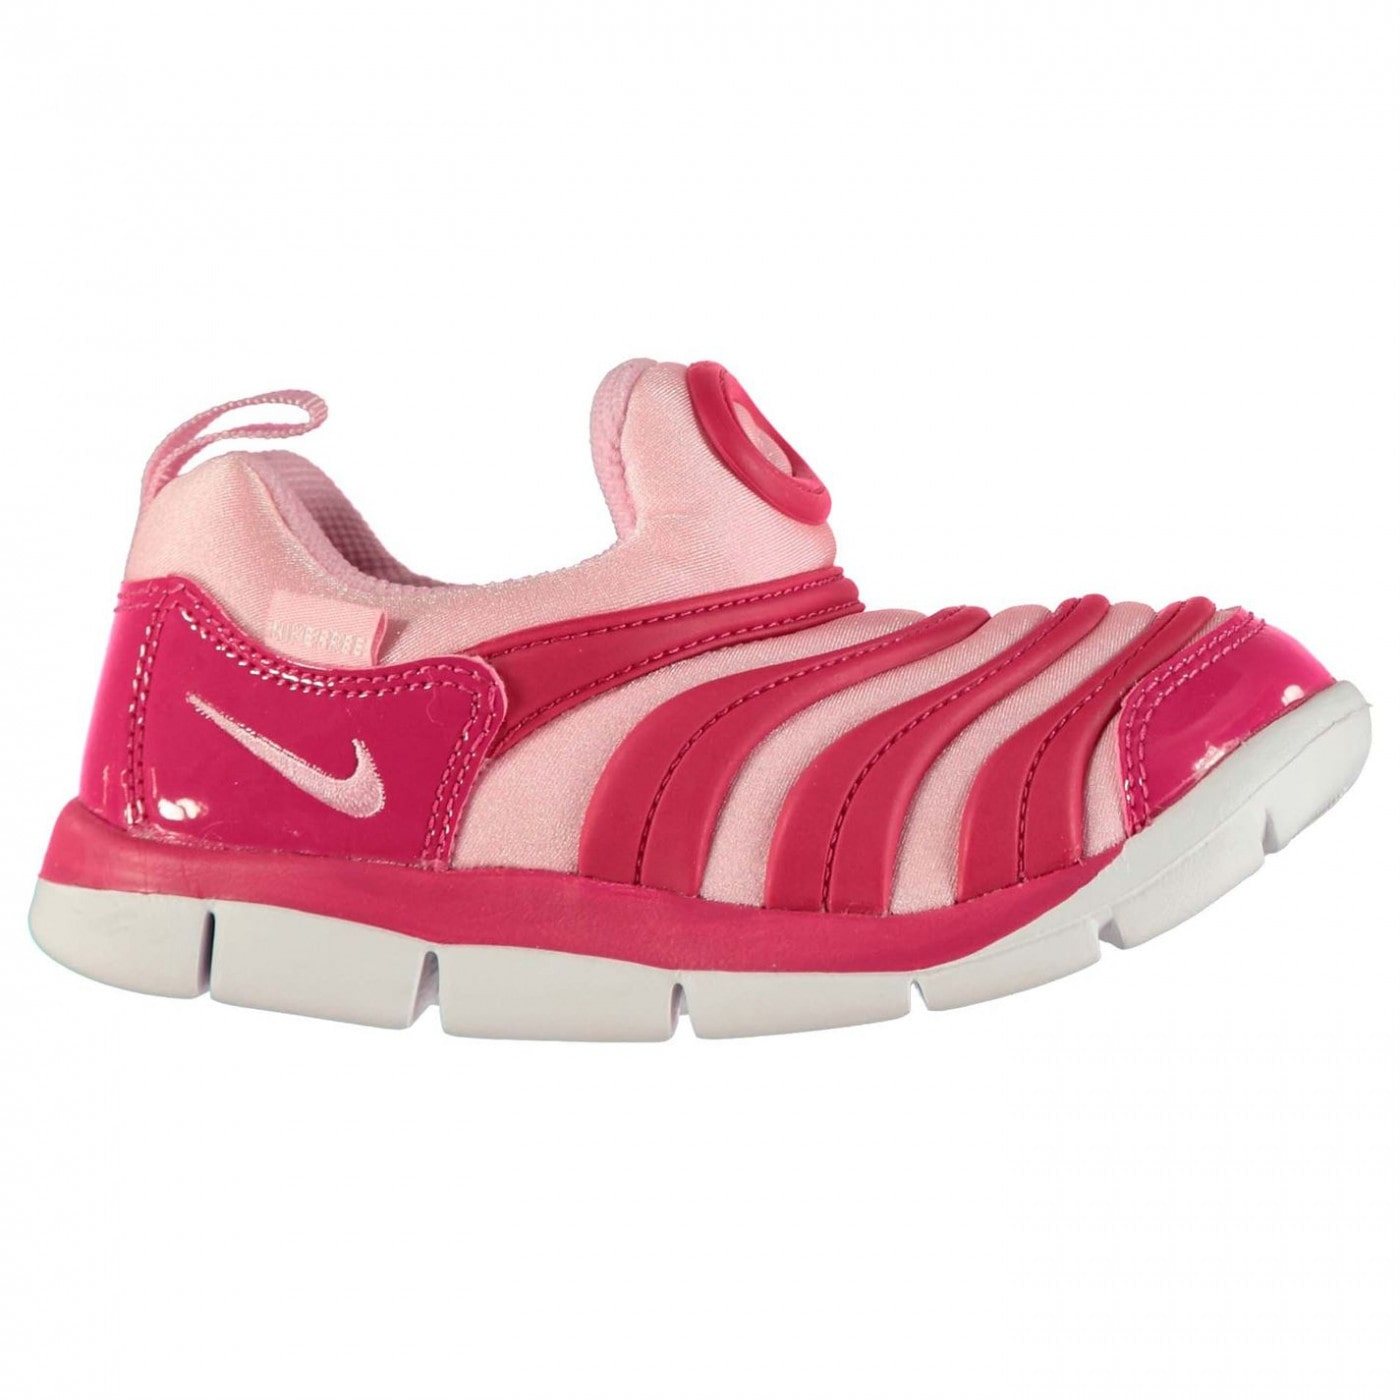 Nike Dynamo Free Infant Girls